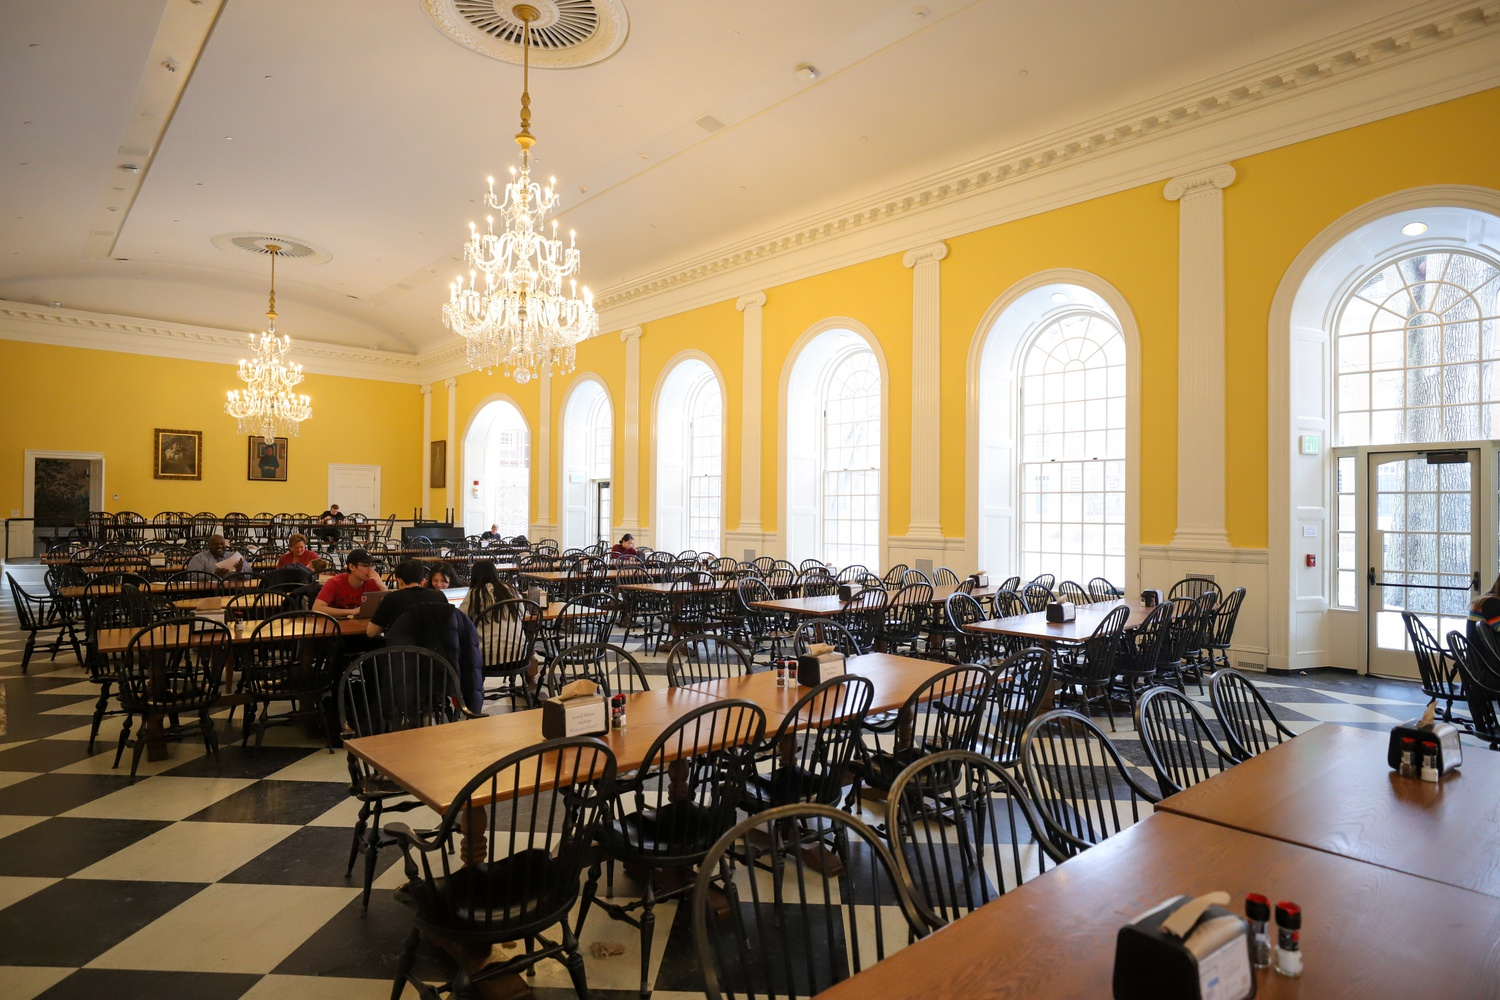 With house renovations completed, the production of the Lowell House Opera, hosted in Lowell Dining Hall, will begin again.